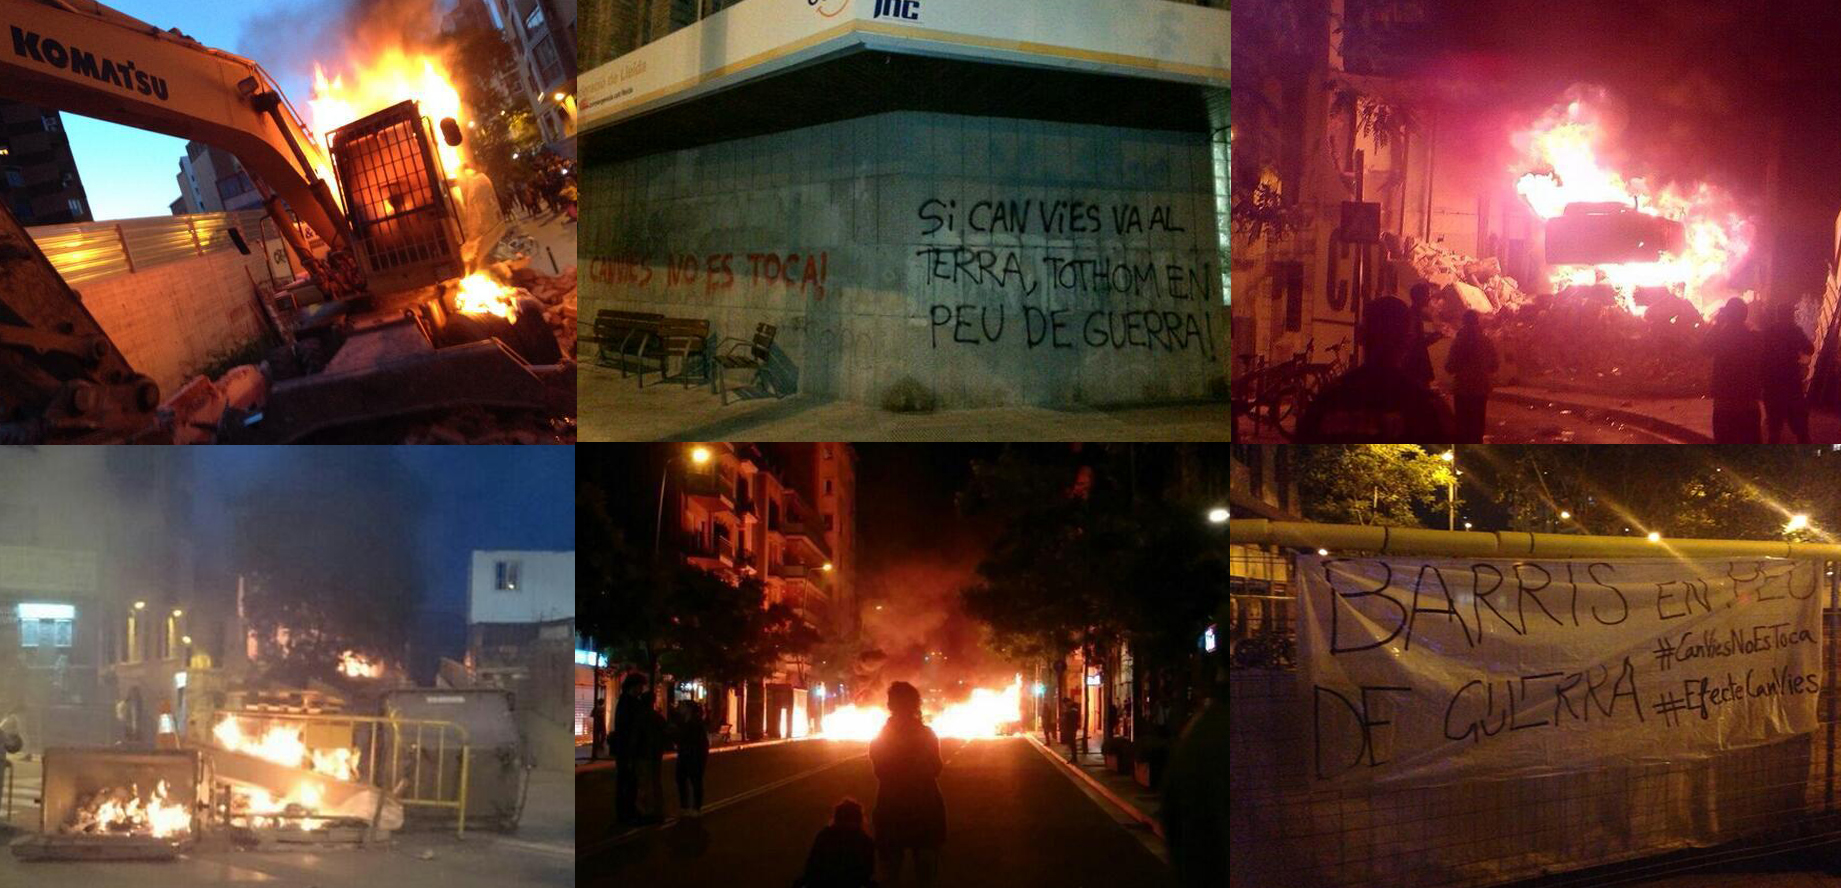 CanVies_ArdeGrua3